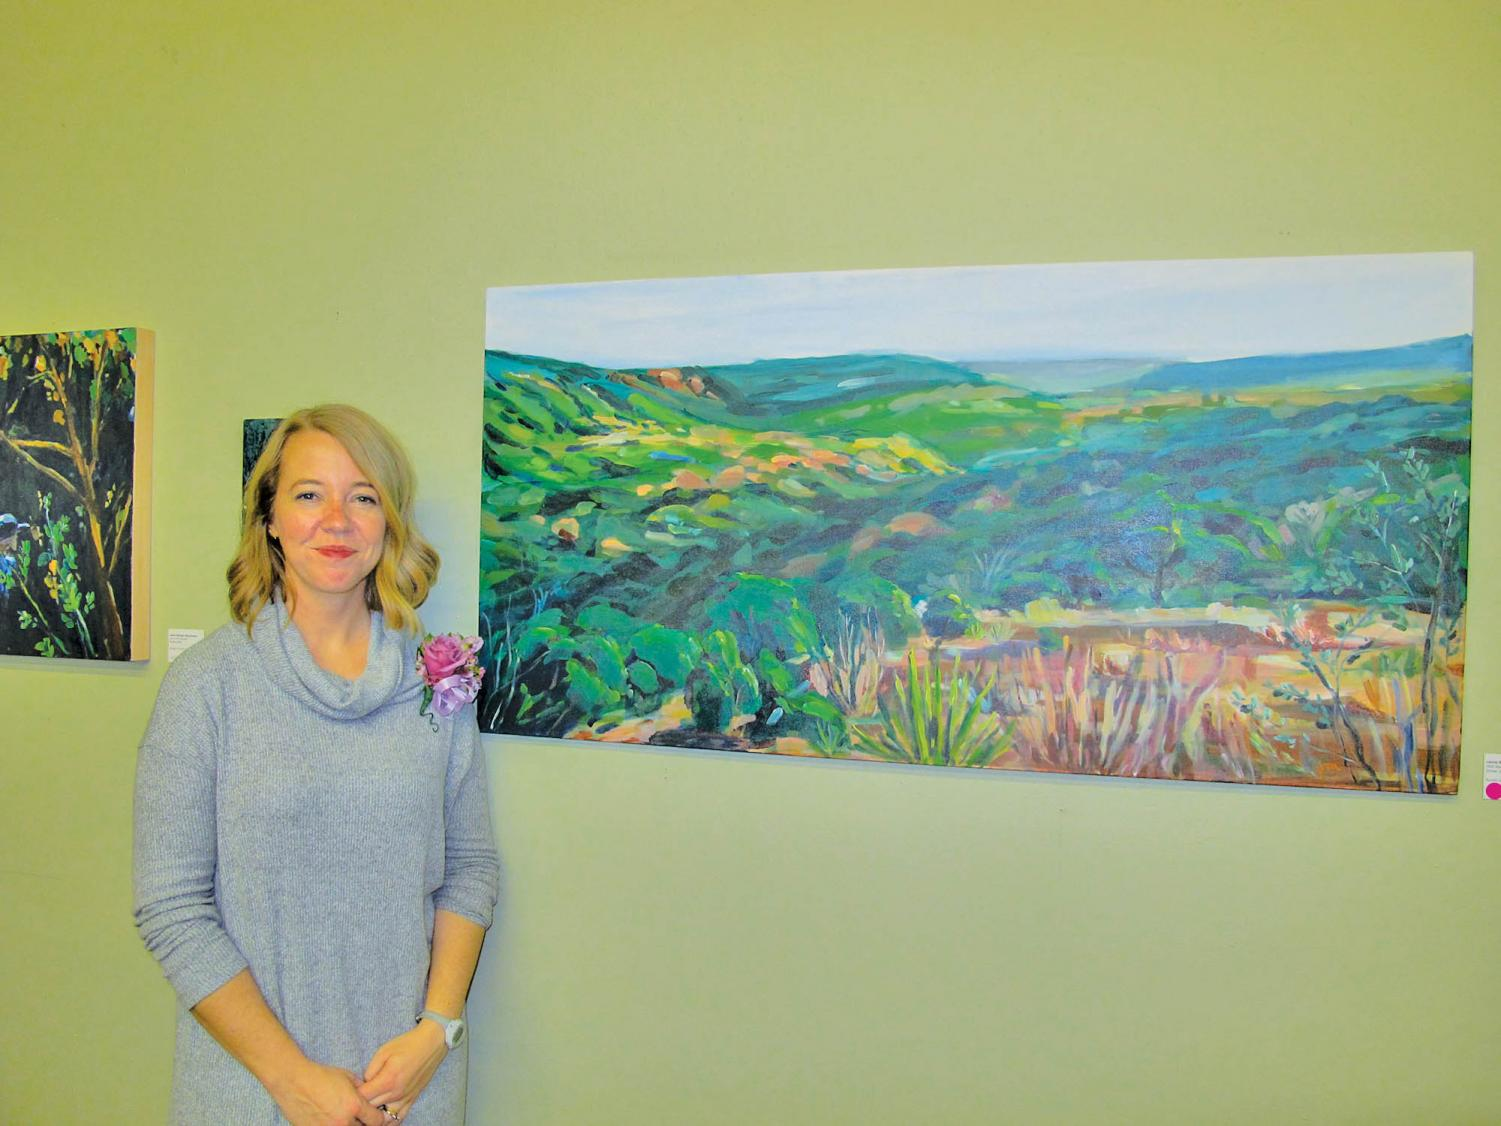 McCormick has been a professional artist since 2016, working to bring attention to Austin's natural landscapes